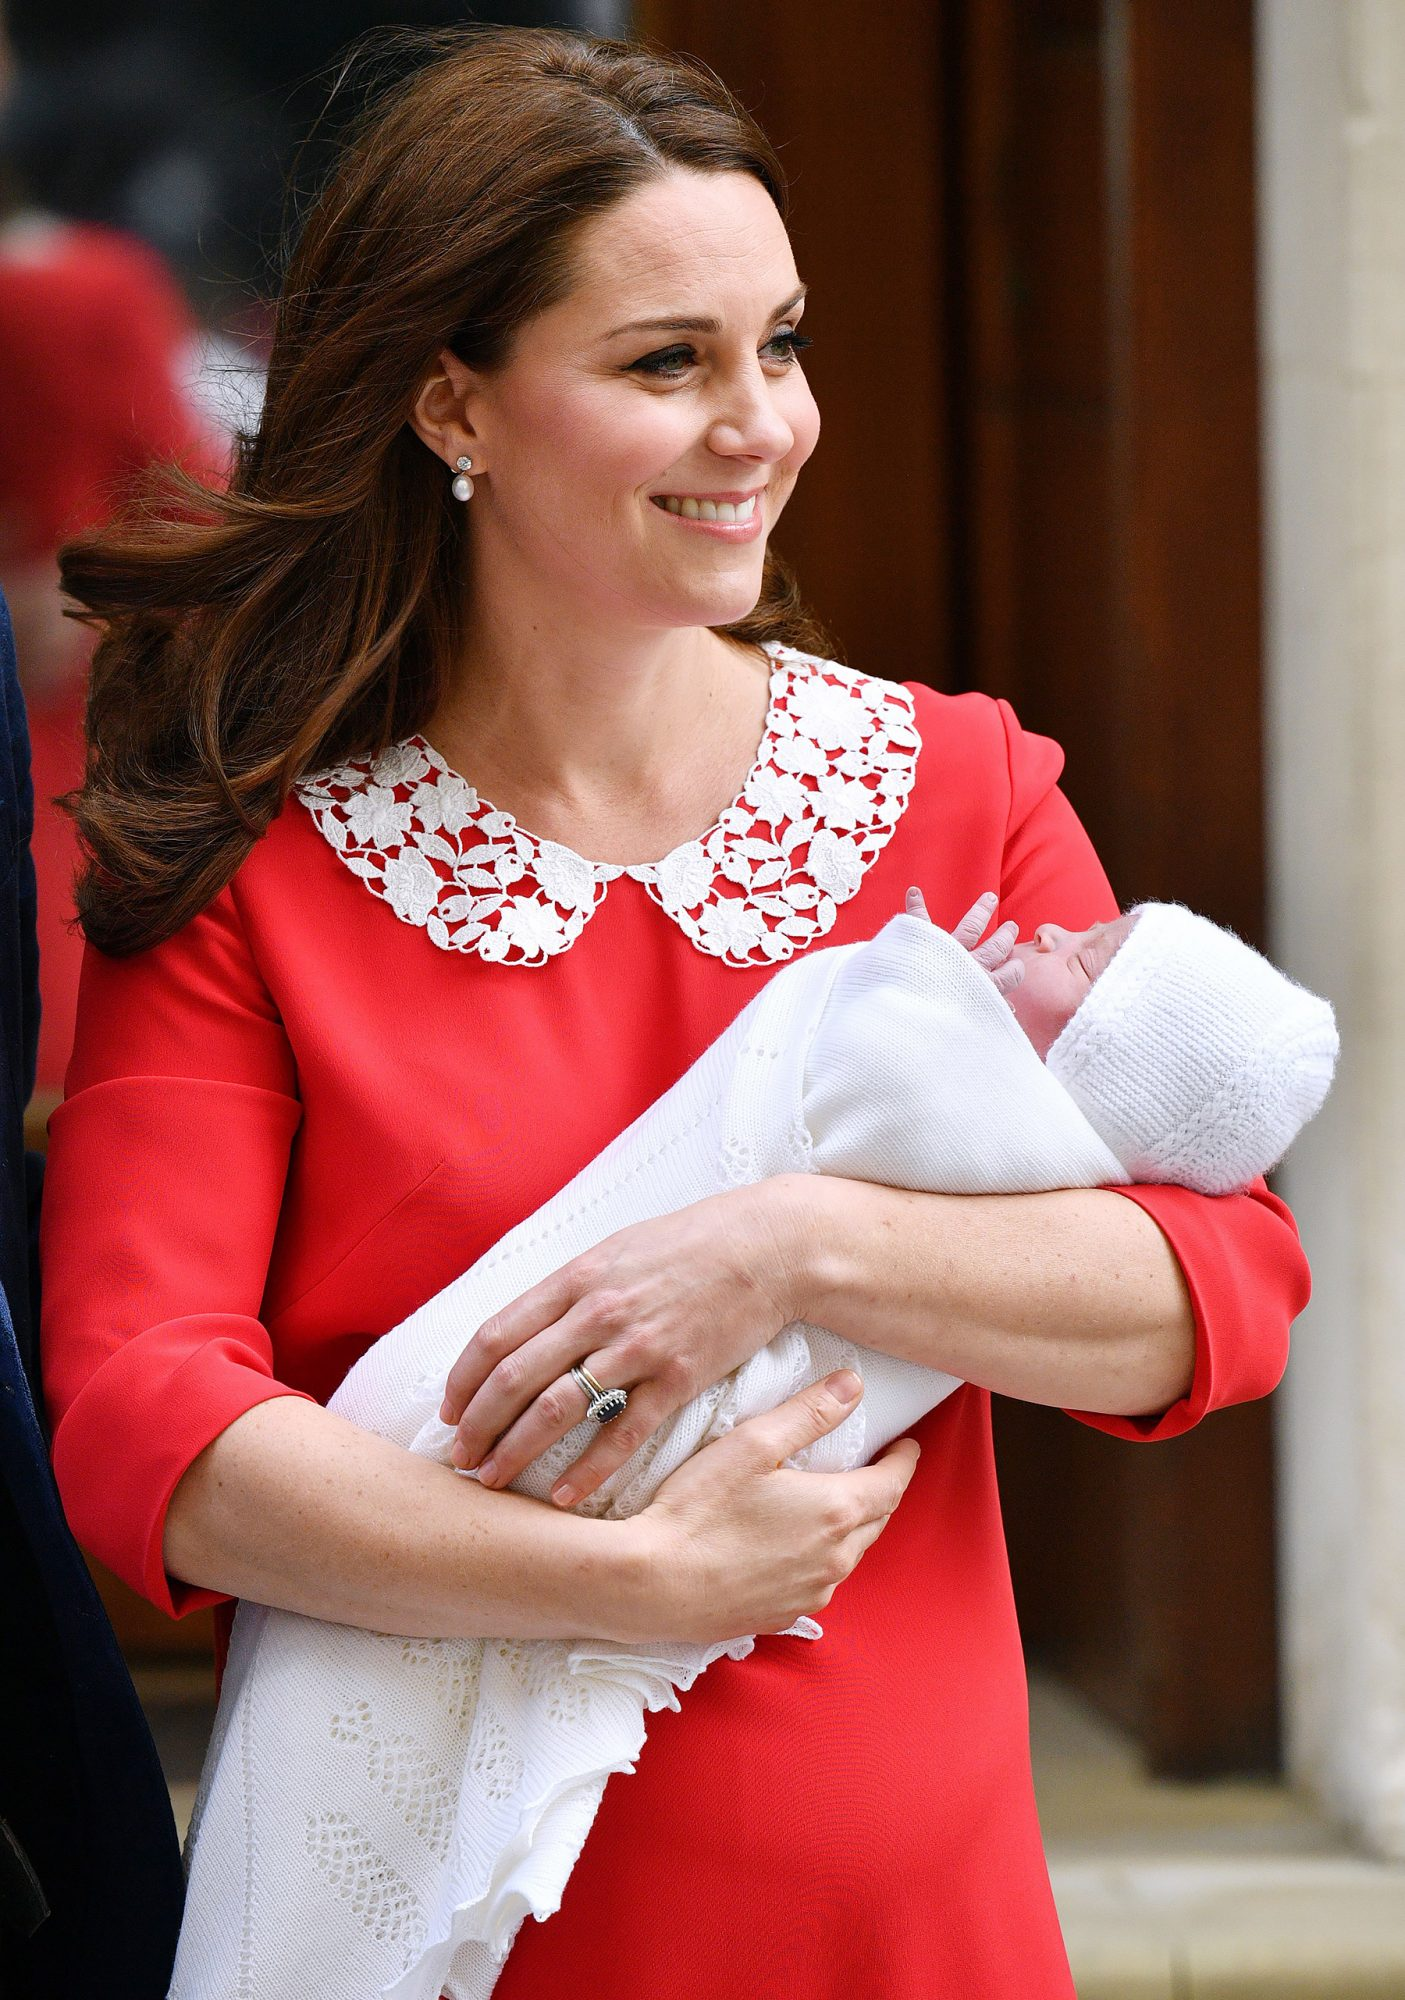 The Reason Kate Middleton Could Go for Baby Number 4 catherine-a13